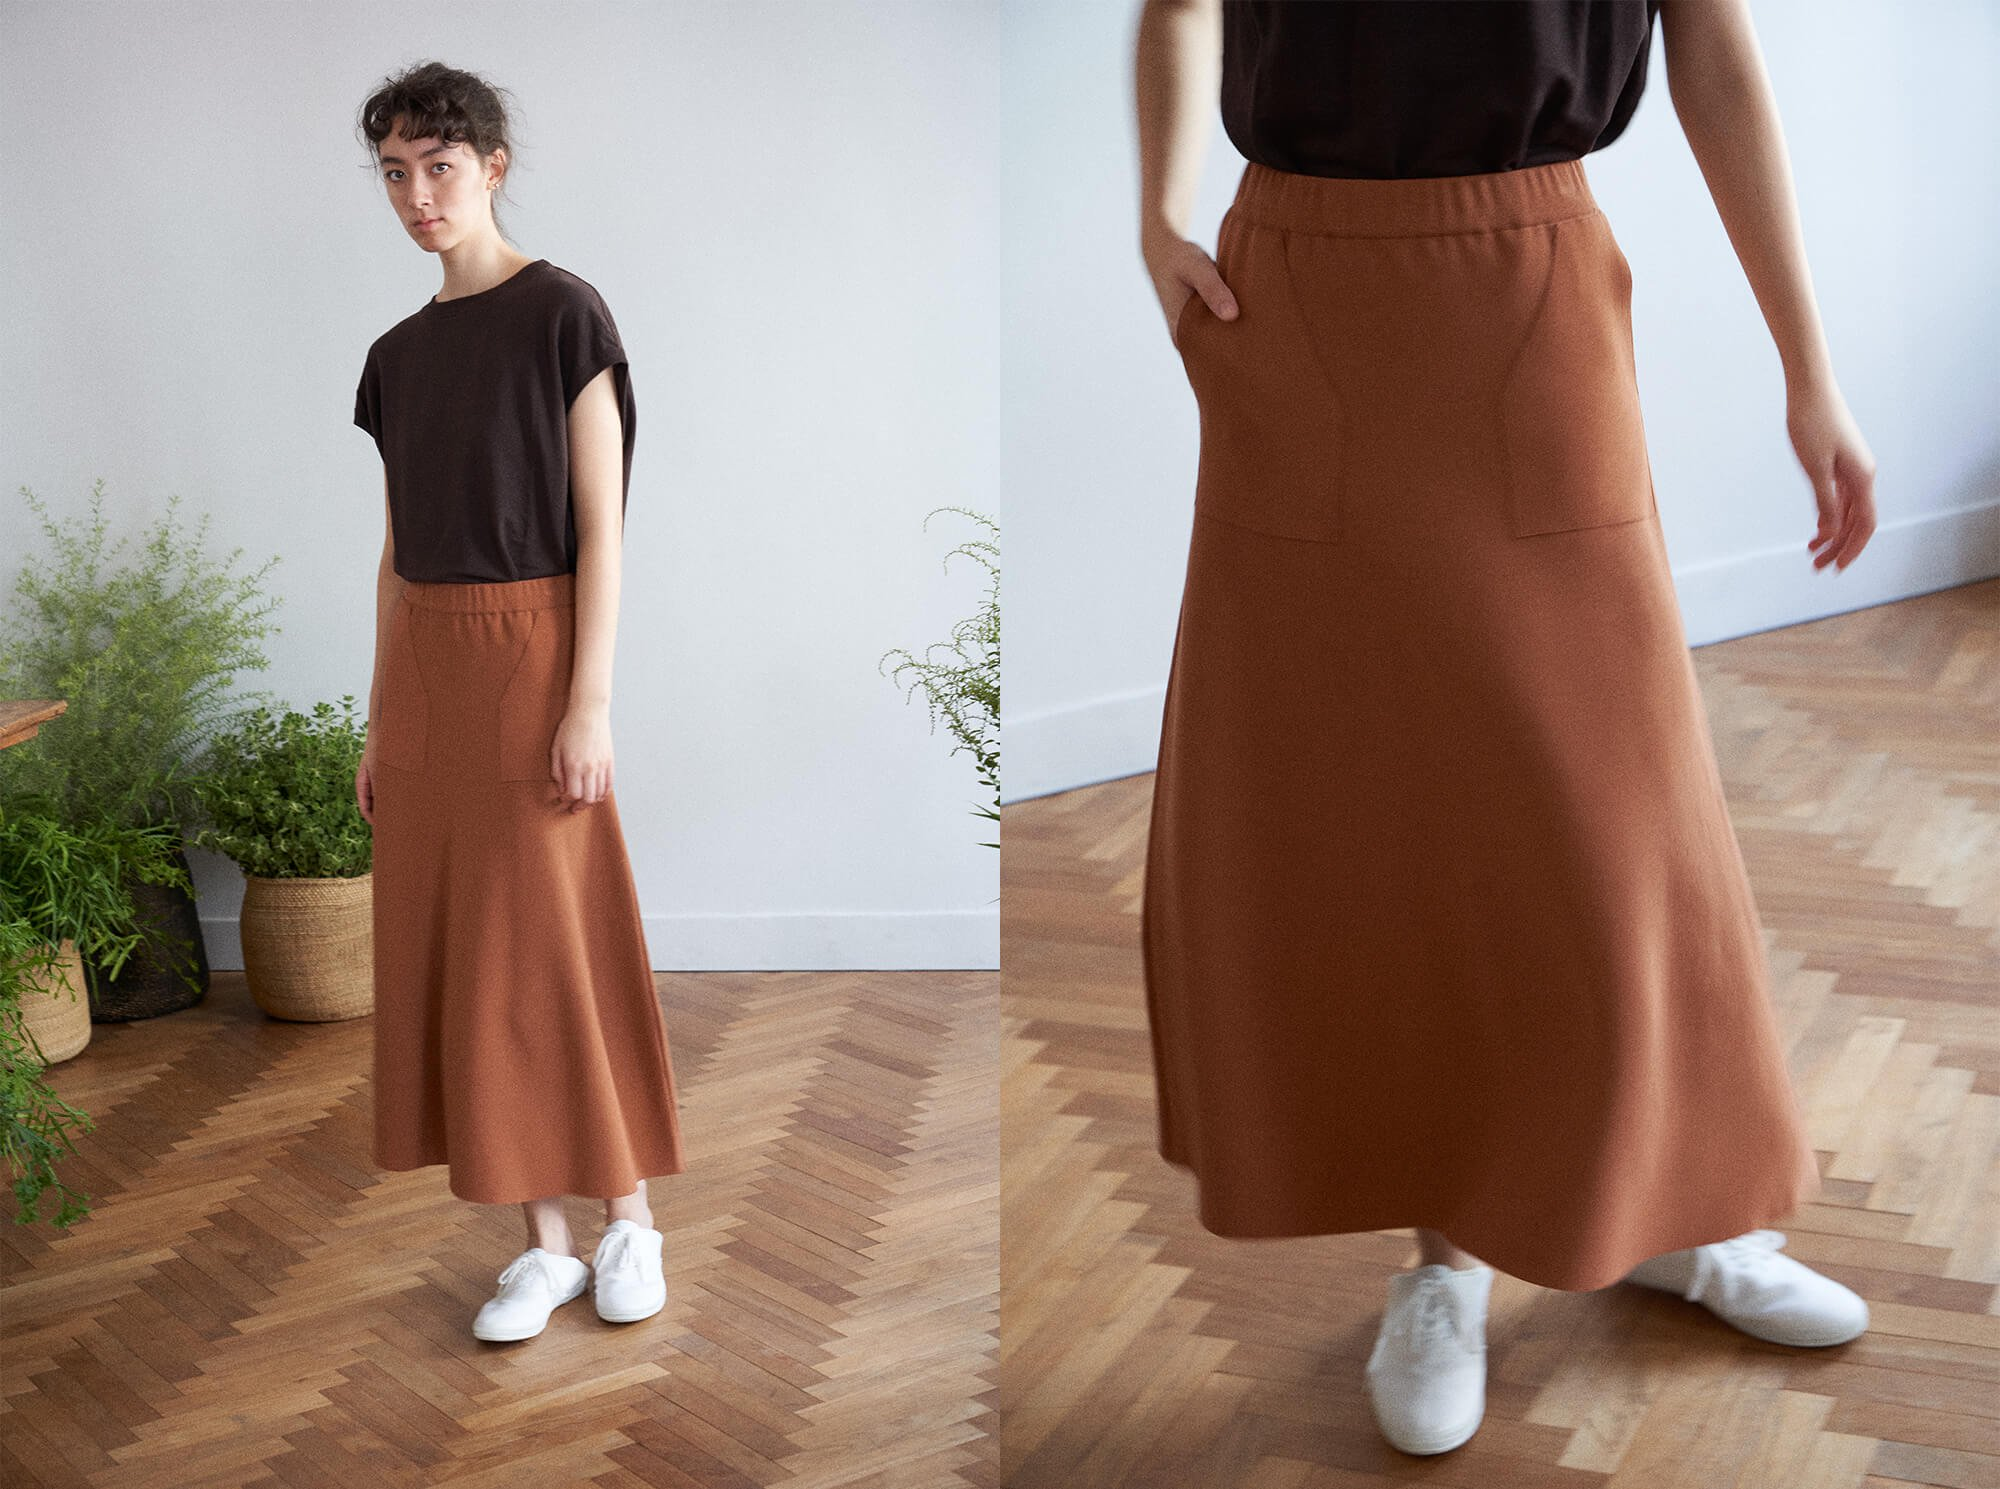 <img class='new_mark_img1' src='https://img.shop-pro.jp/img/new/icons14.gif' style='border:none;display:inline;margin:0px;padding:0px;width:auto;' />high twist cotton smooth-knit skirt